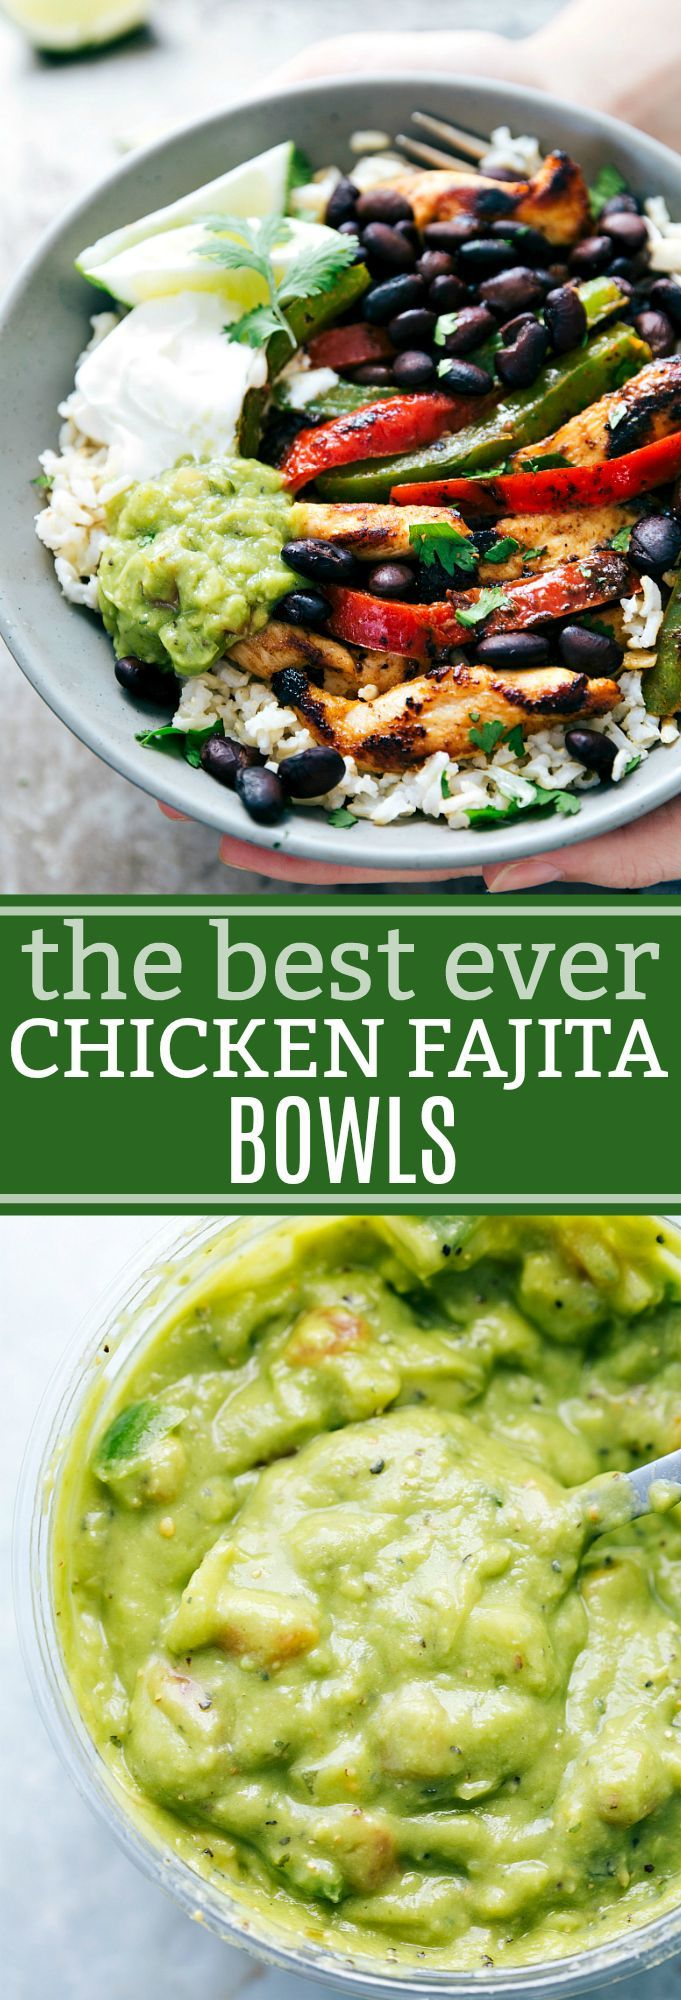 The ultimate BEST EVER Chicken Fajita Bowls! Delicious and so simple to make! via chelseasmessyapron.com #chickenbreastrecipeseasy